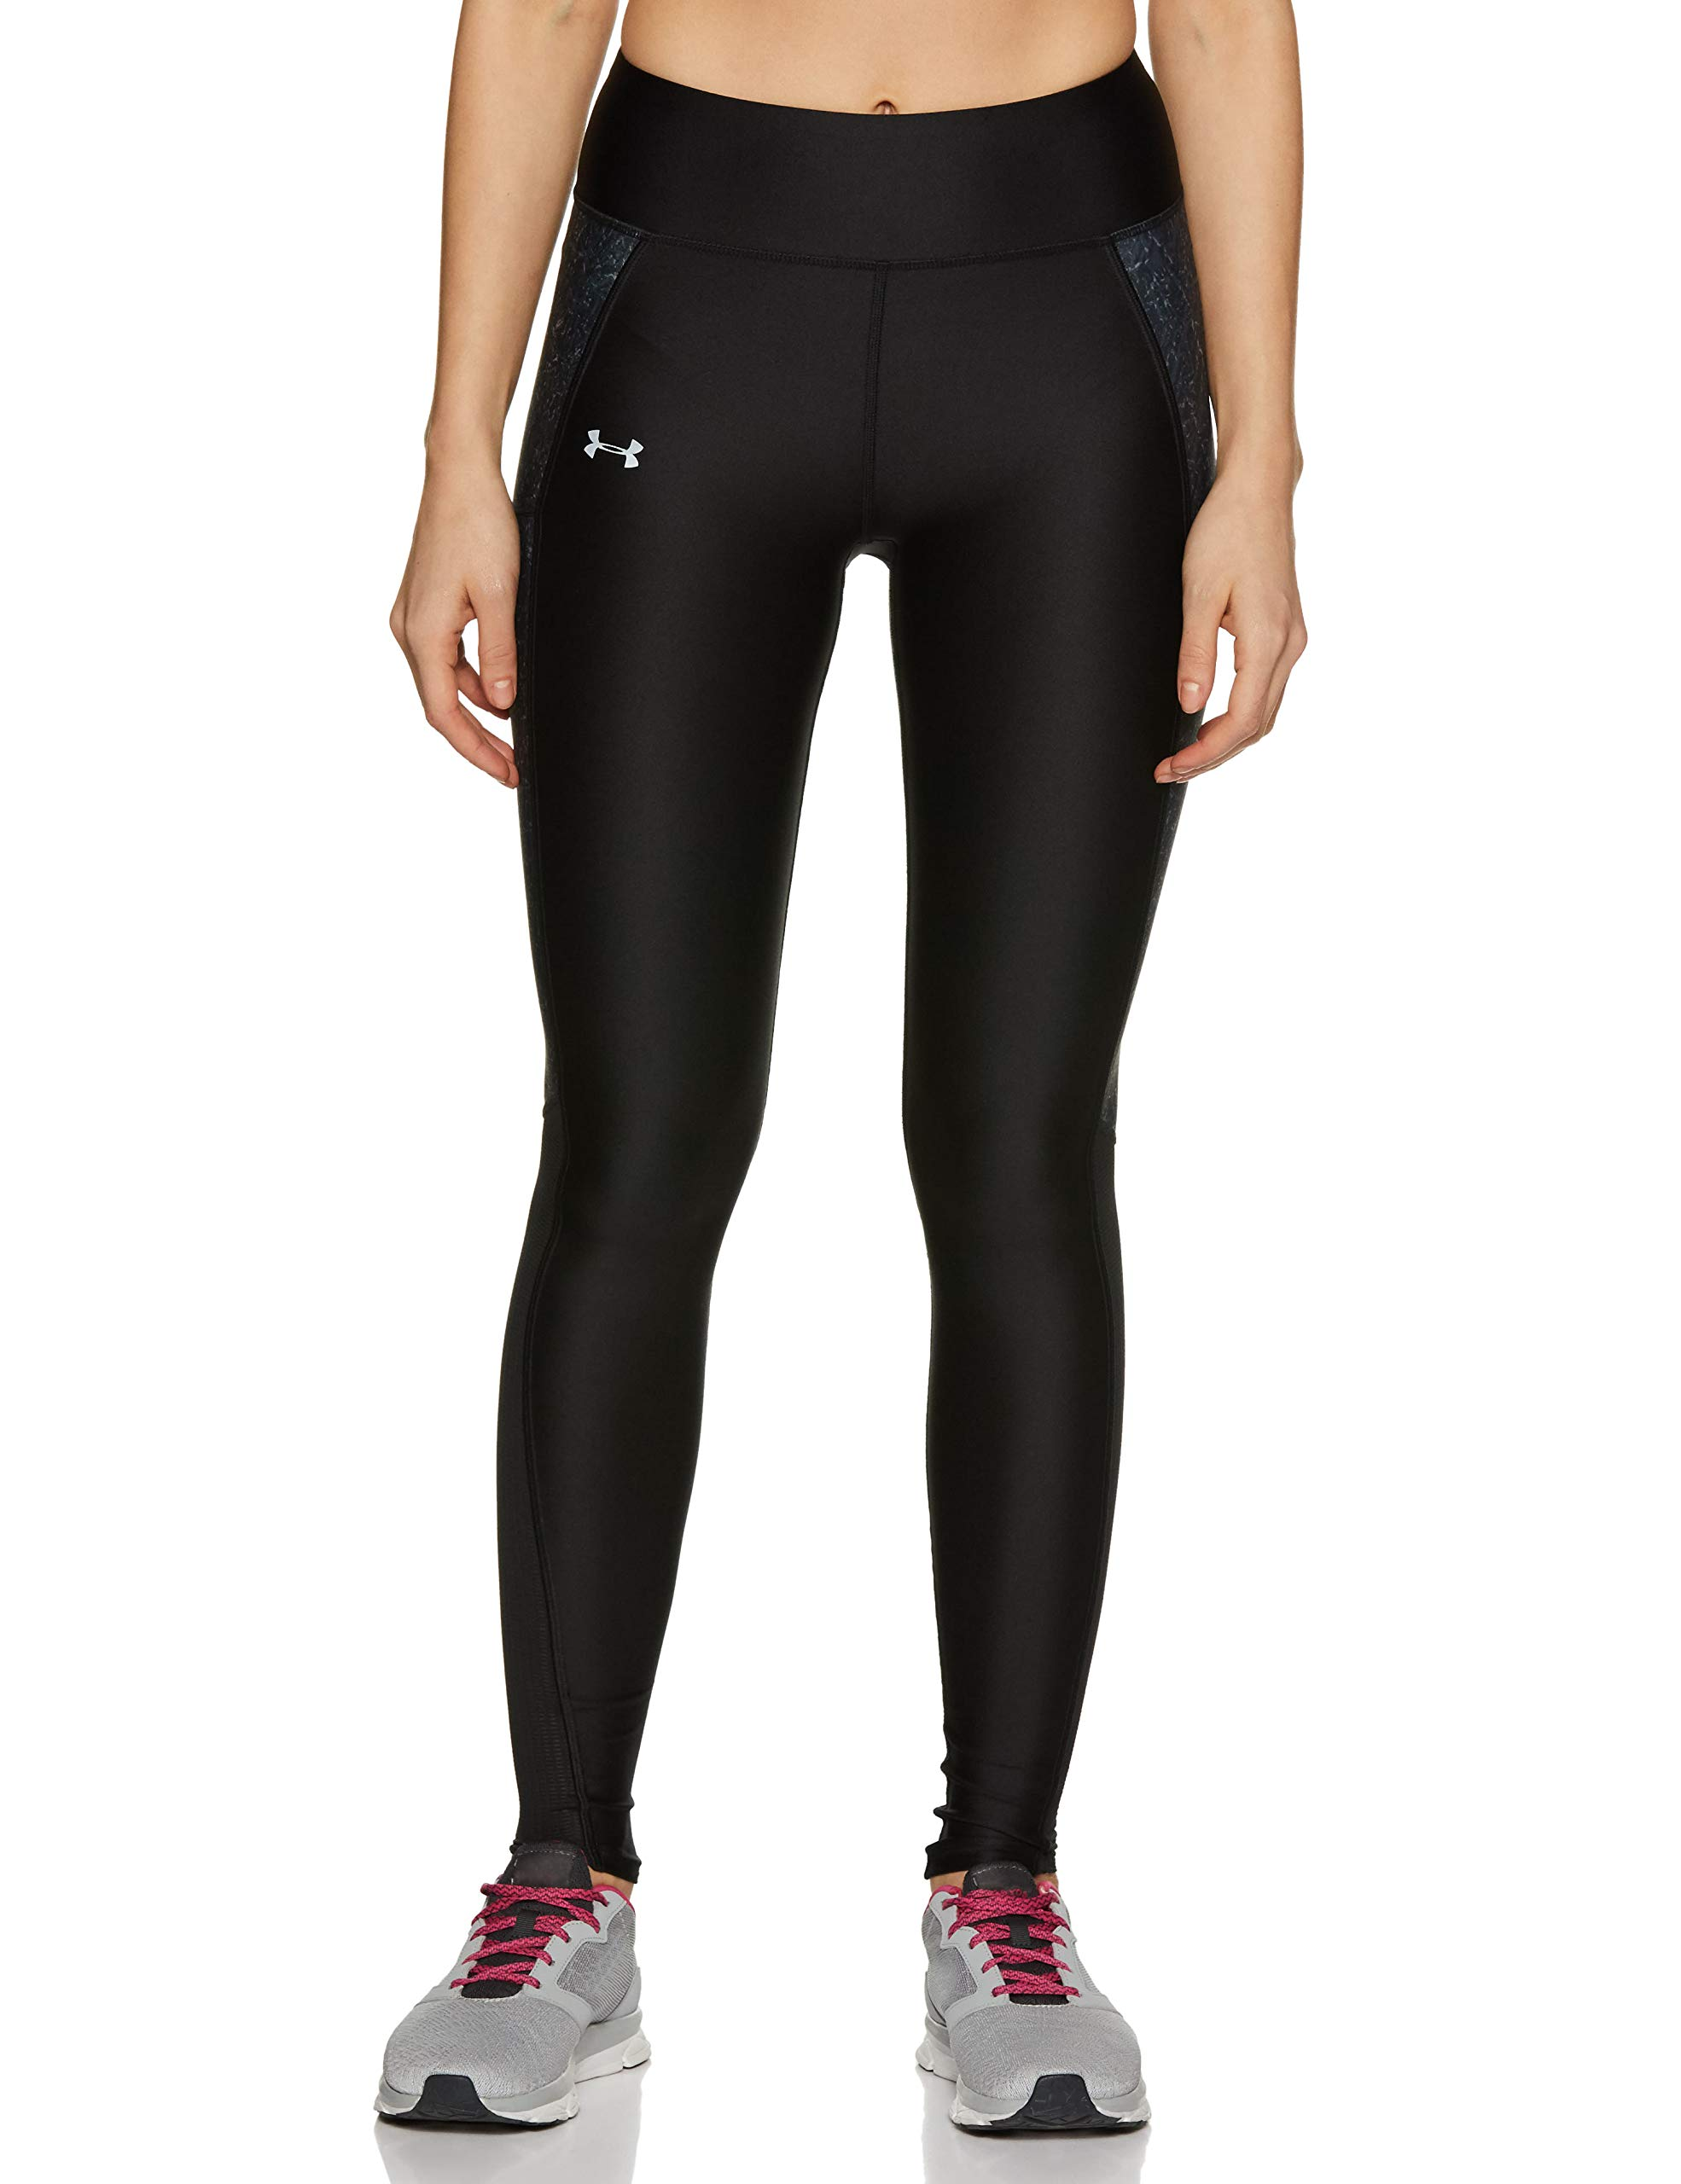 Under Armour Women's Fly-By Printed Legging,Black /Reflective, Large by Under Armour